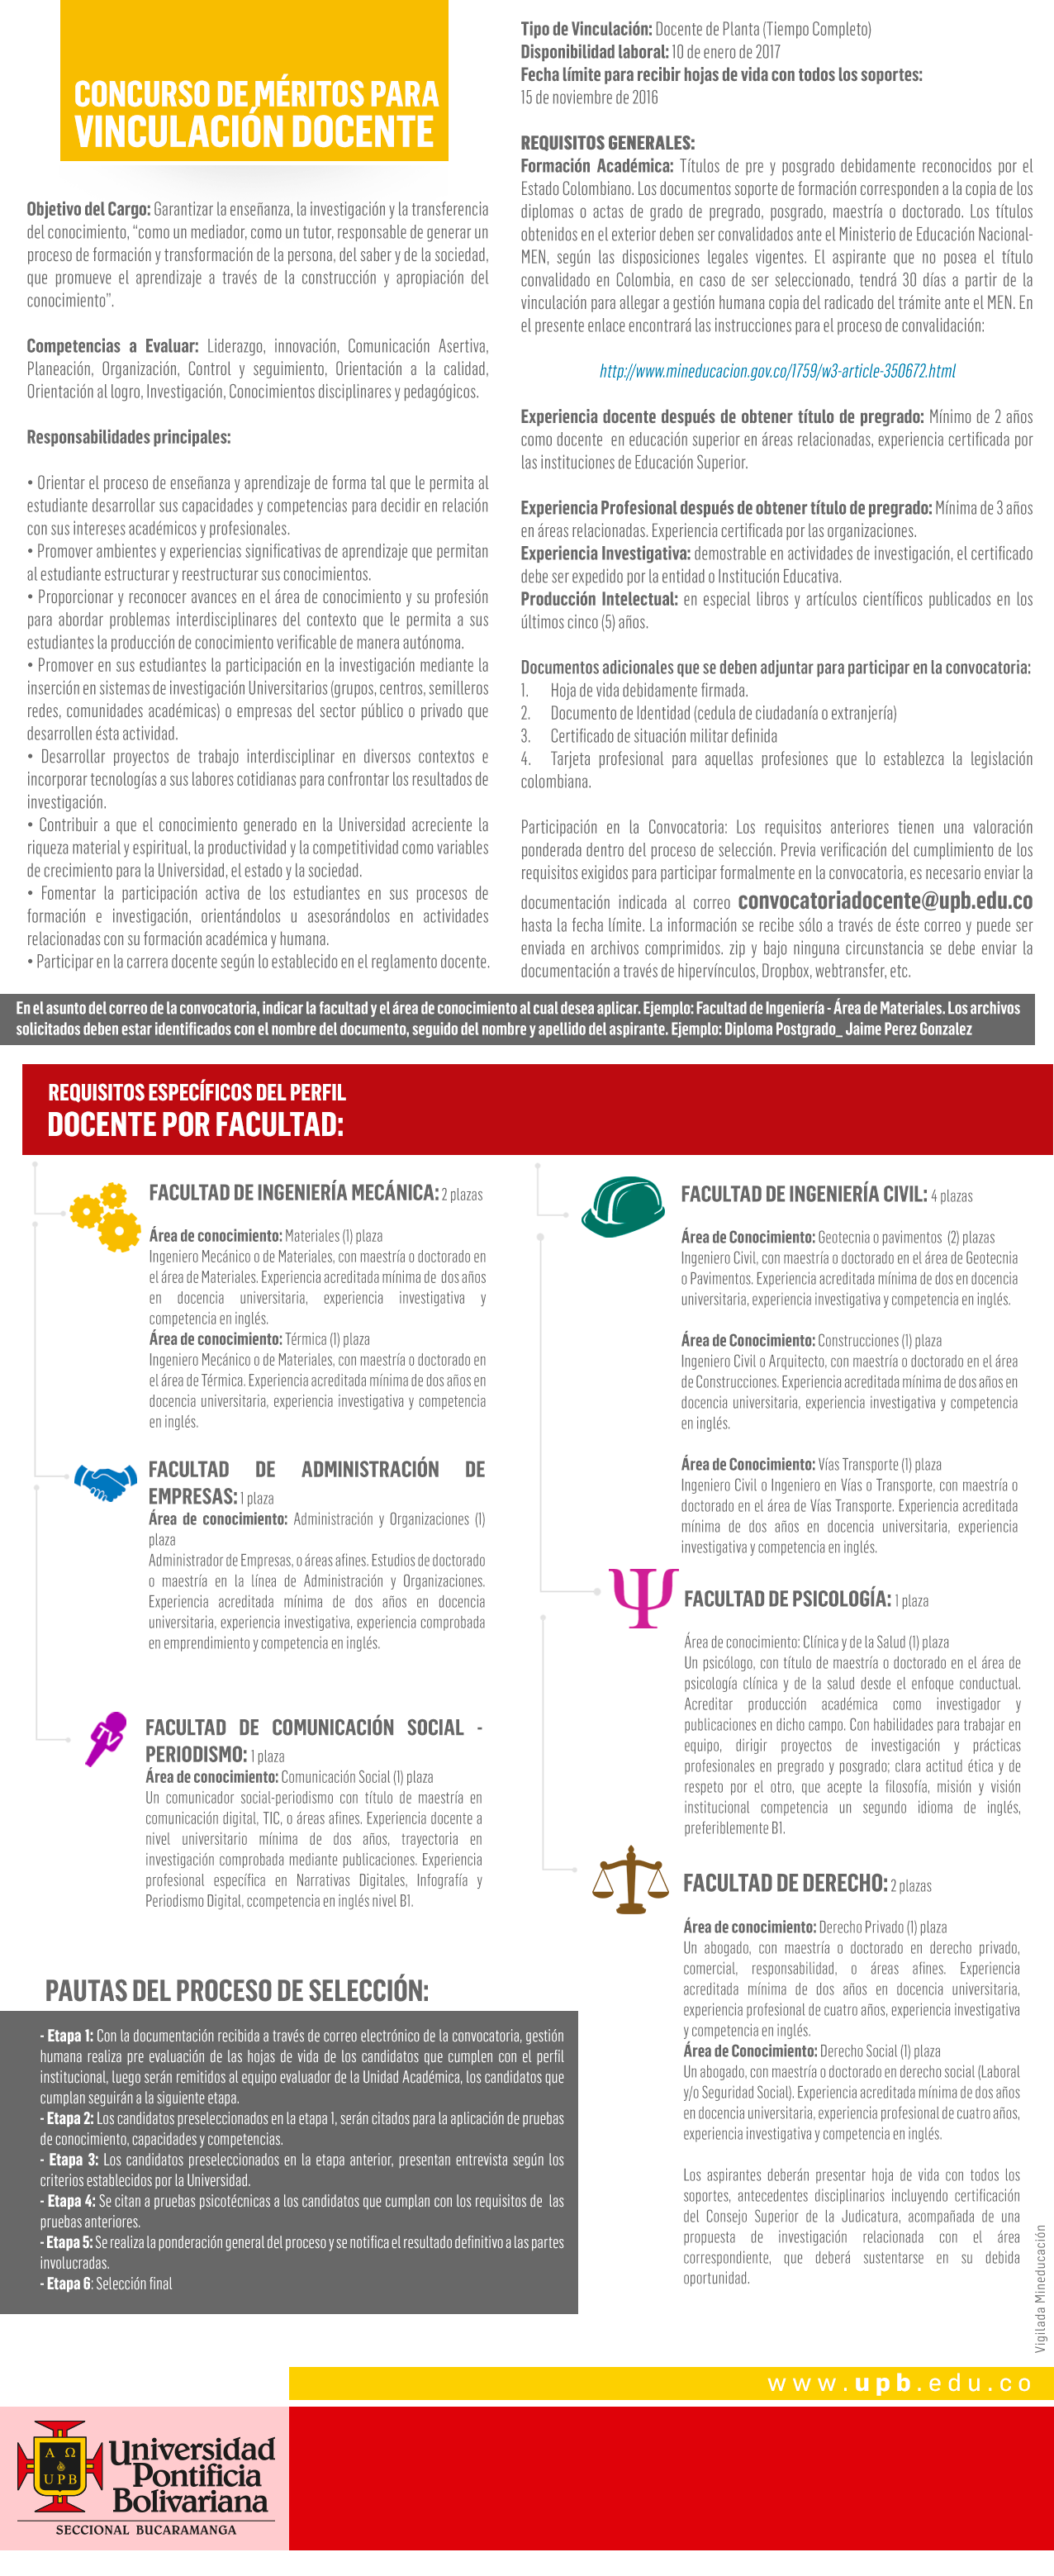 Convocatoria docente universidad pontificia bolivariana for Convocatoria concurso docente 2016